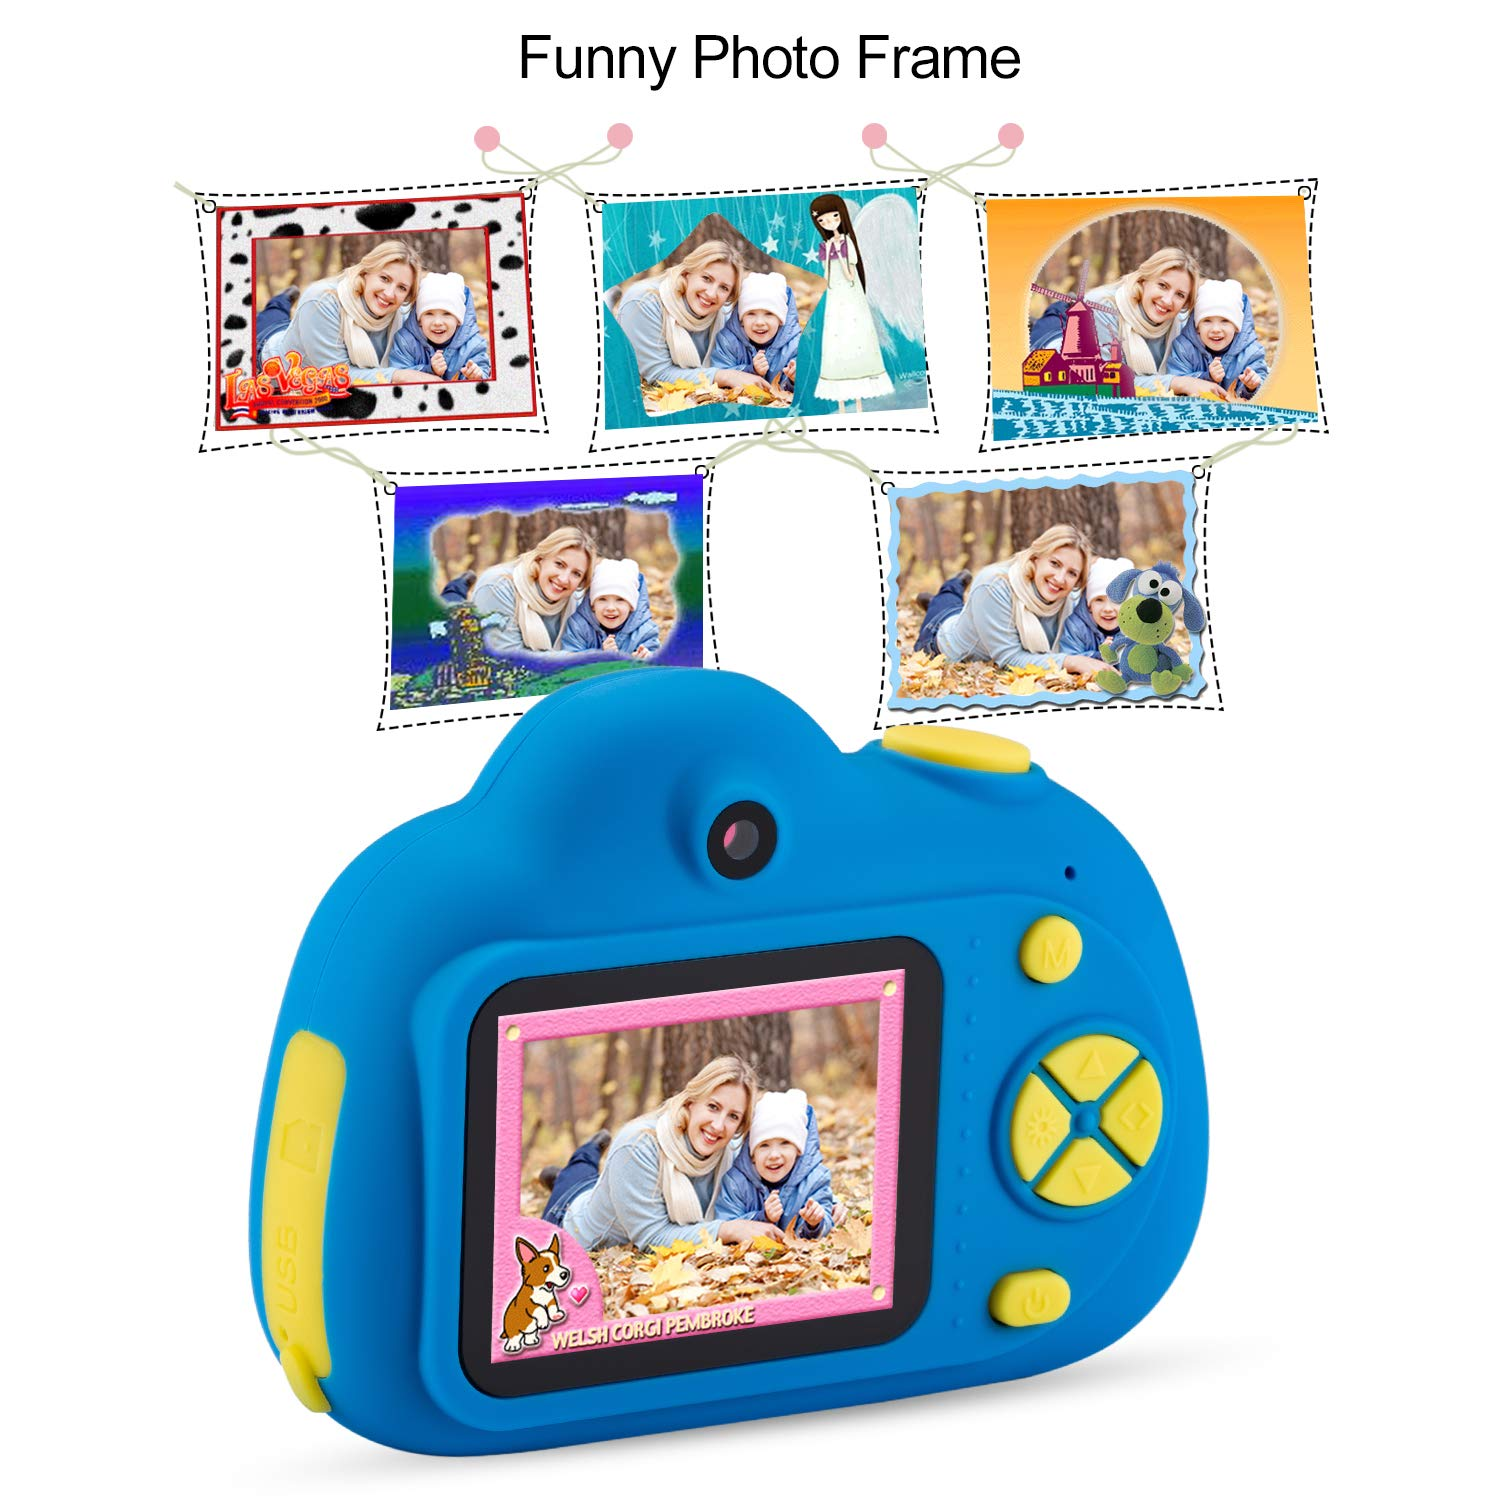 Deeteck Kids Video Camera for Girls Boys, 2 inch Mini Digital Camera,Shockproof Children Camcorders, Toys for 5-9 year old Boys Birthday Gifts with 16GB SD Card(Blue) by Deeteck (Image #4)